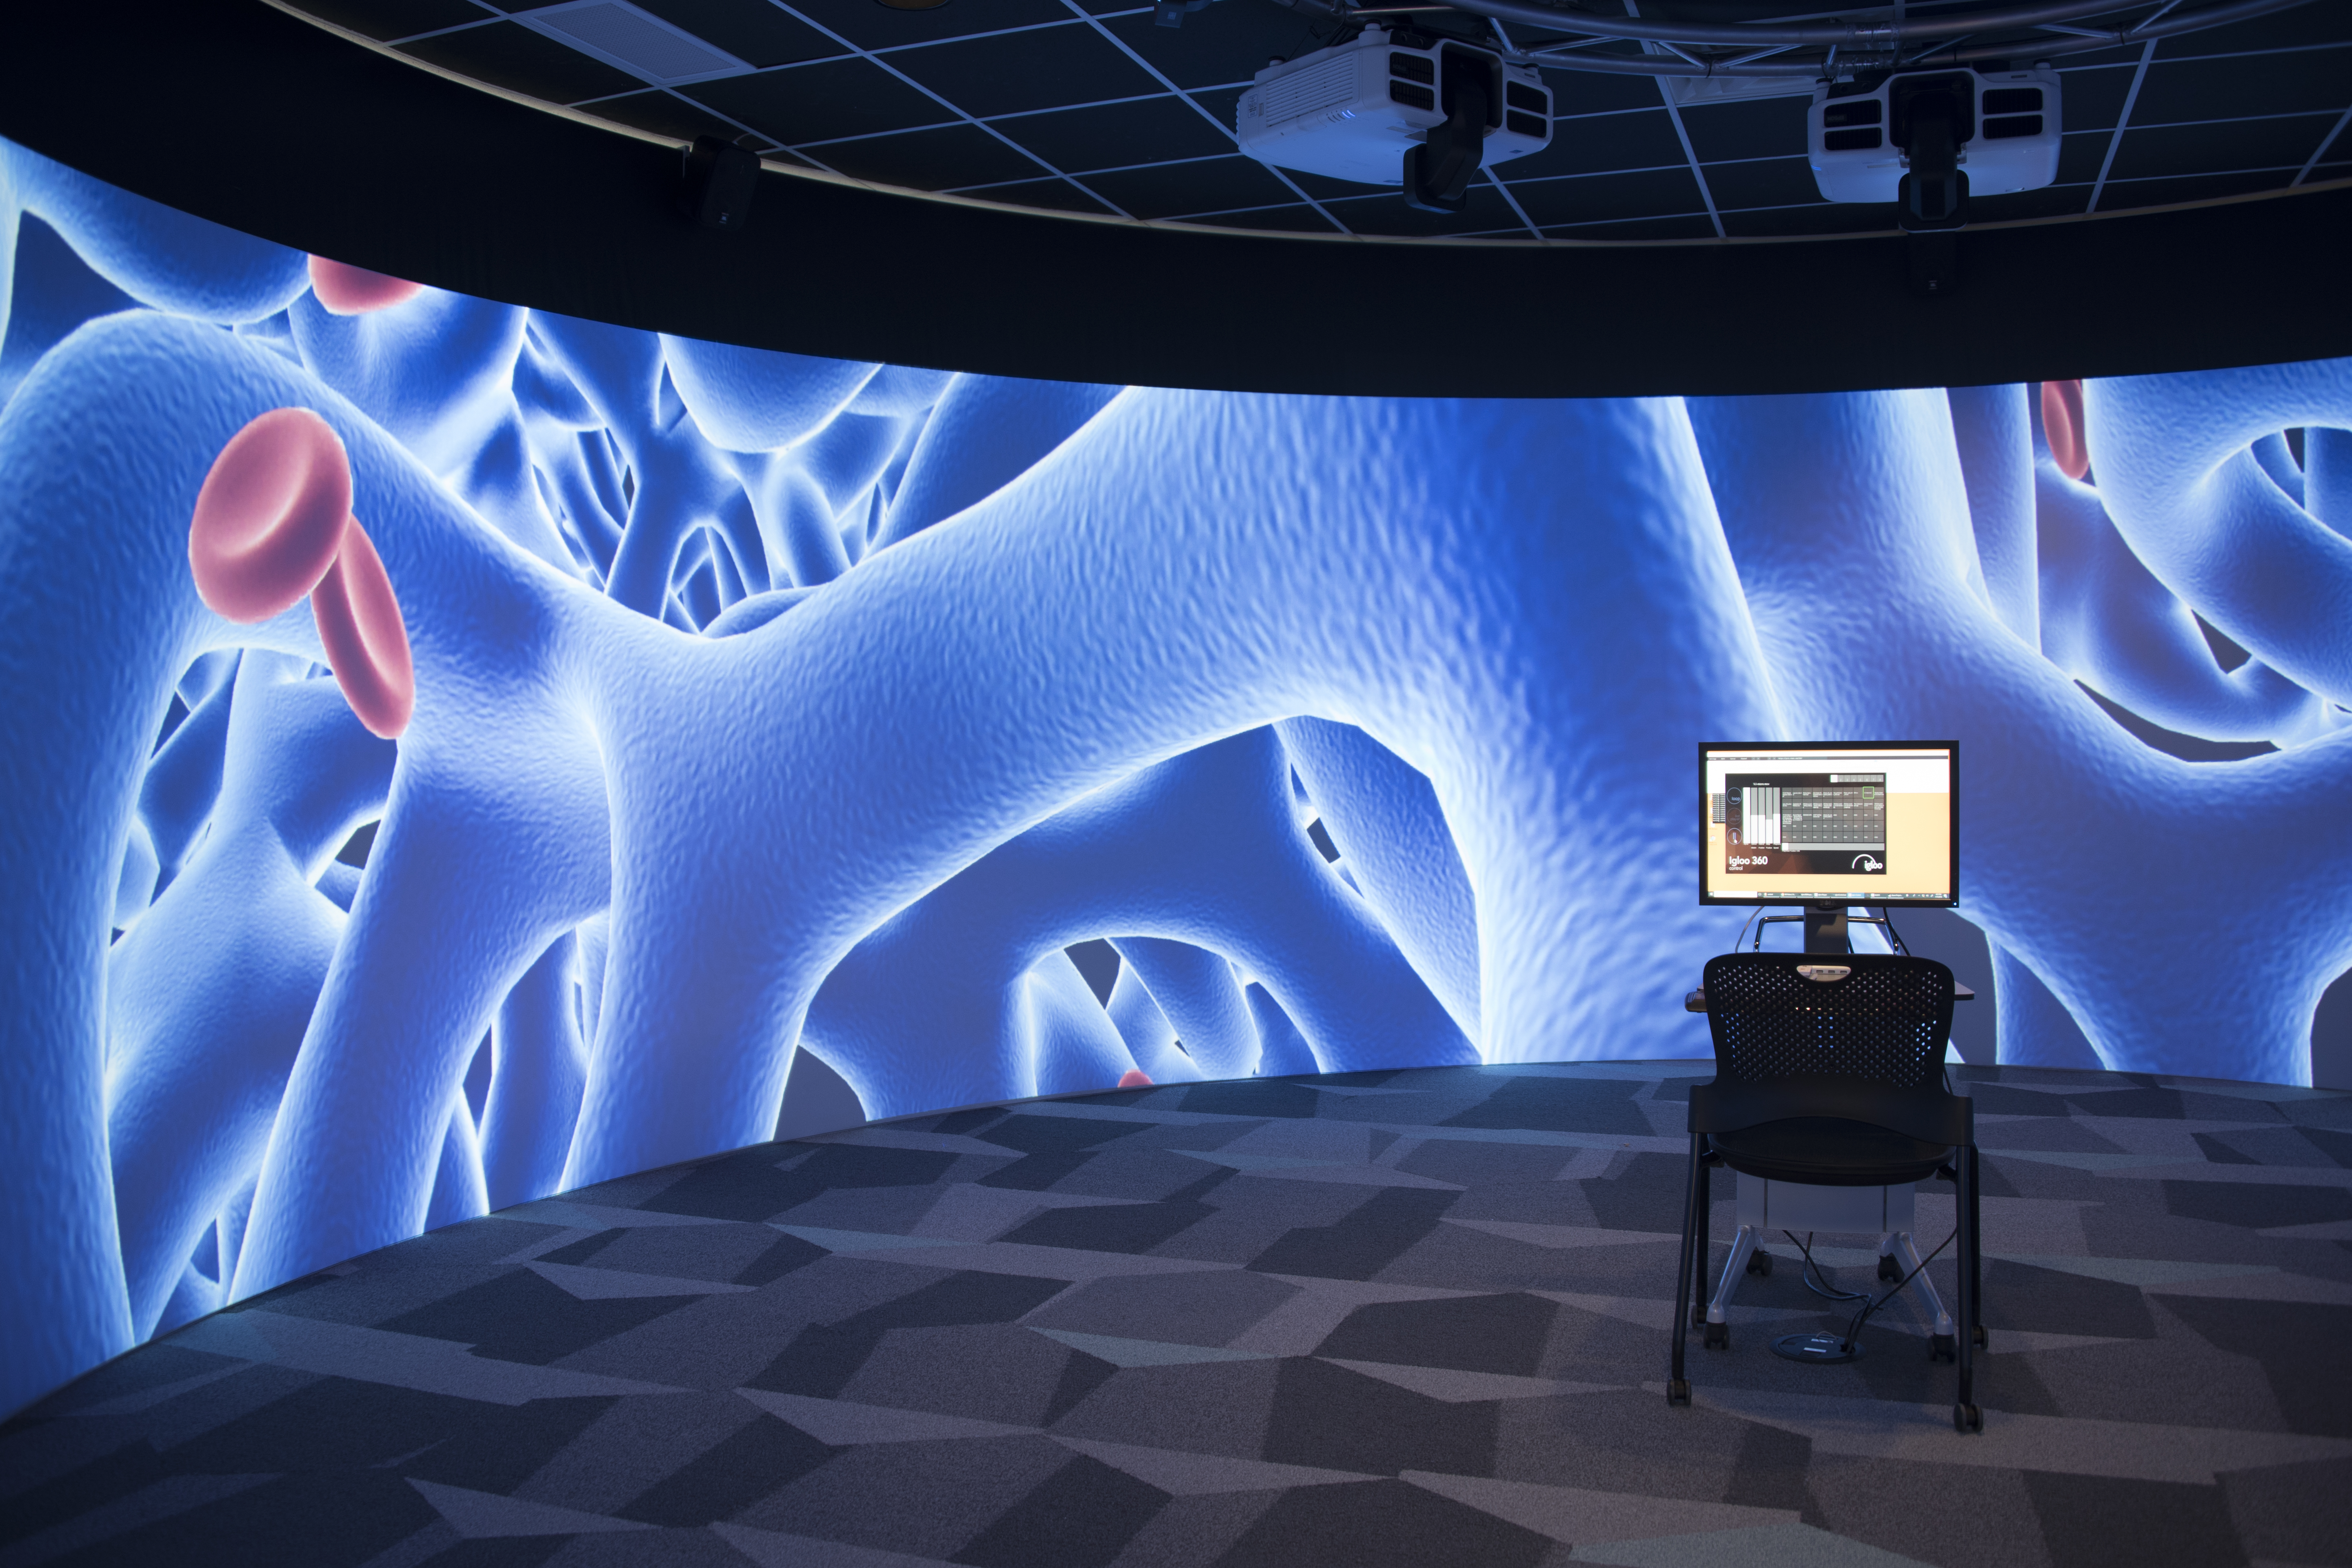 Image of the interior of the 360 degree visualization cylinder in the Digital Scholarship Lab, showing a large-scale visualization and the computer setup in the middle of the room.